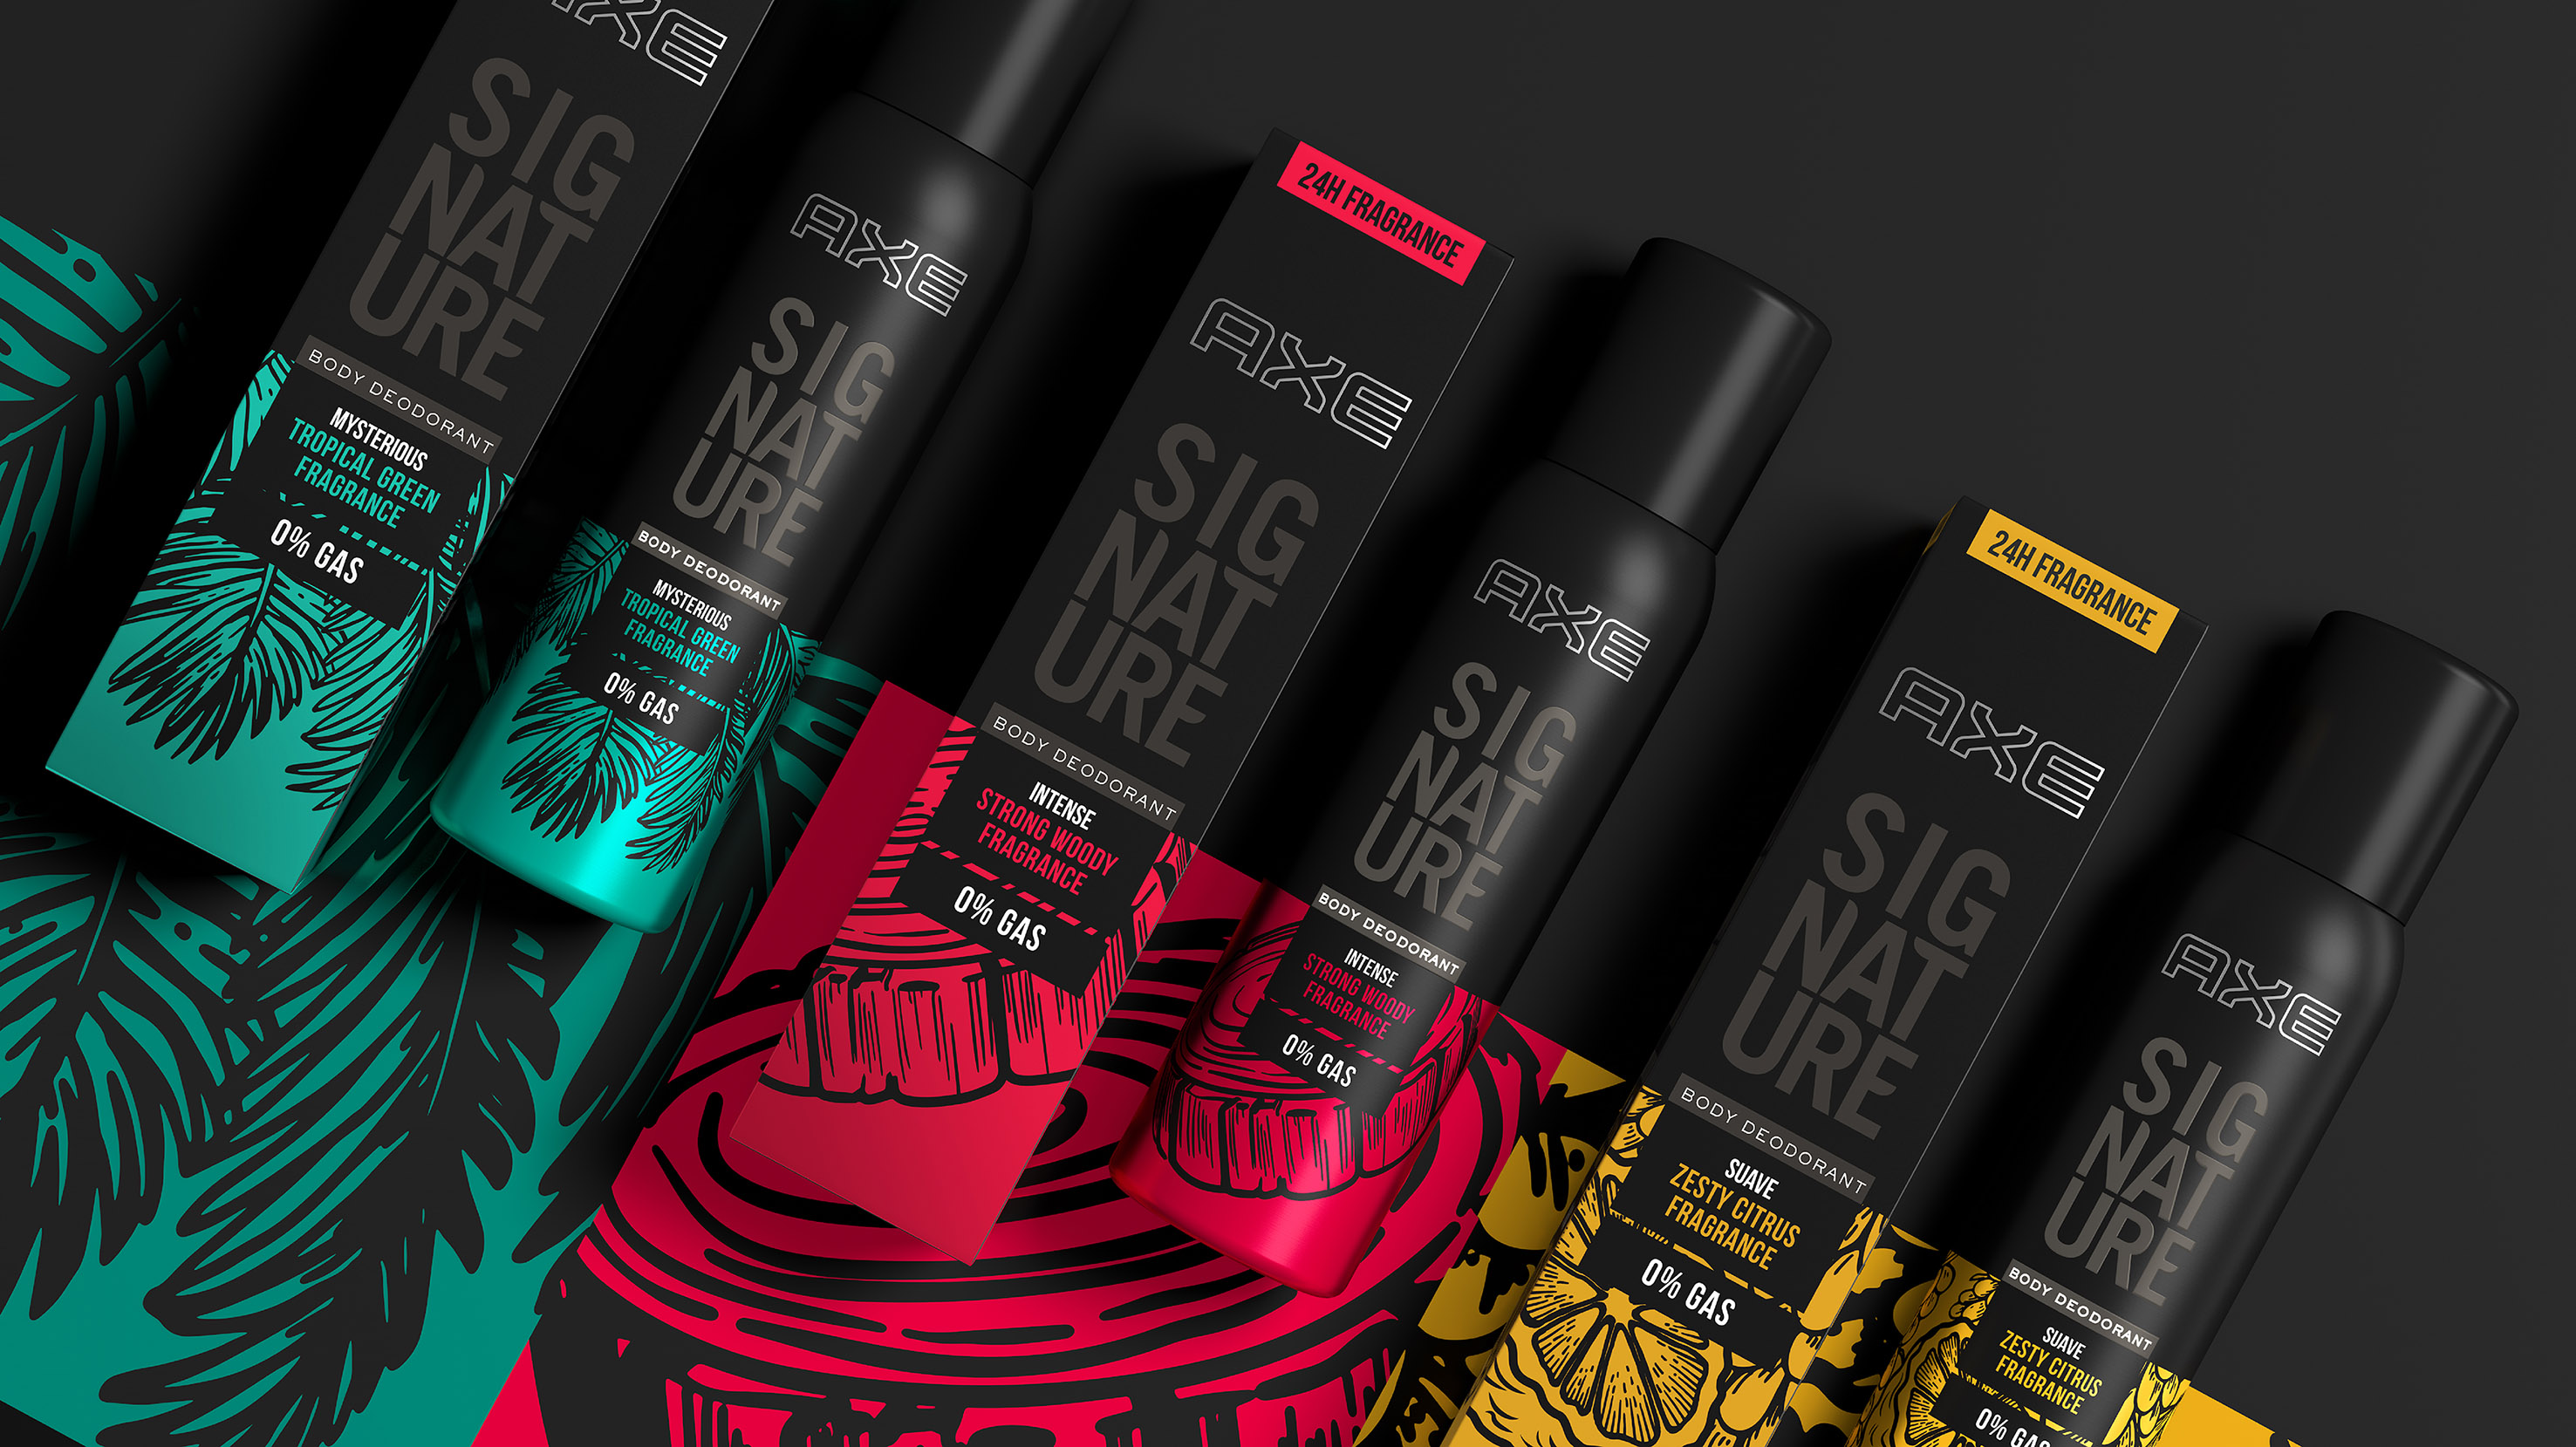 PB Creative Delivers a Dynamic Update for Axe in India